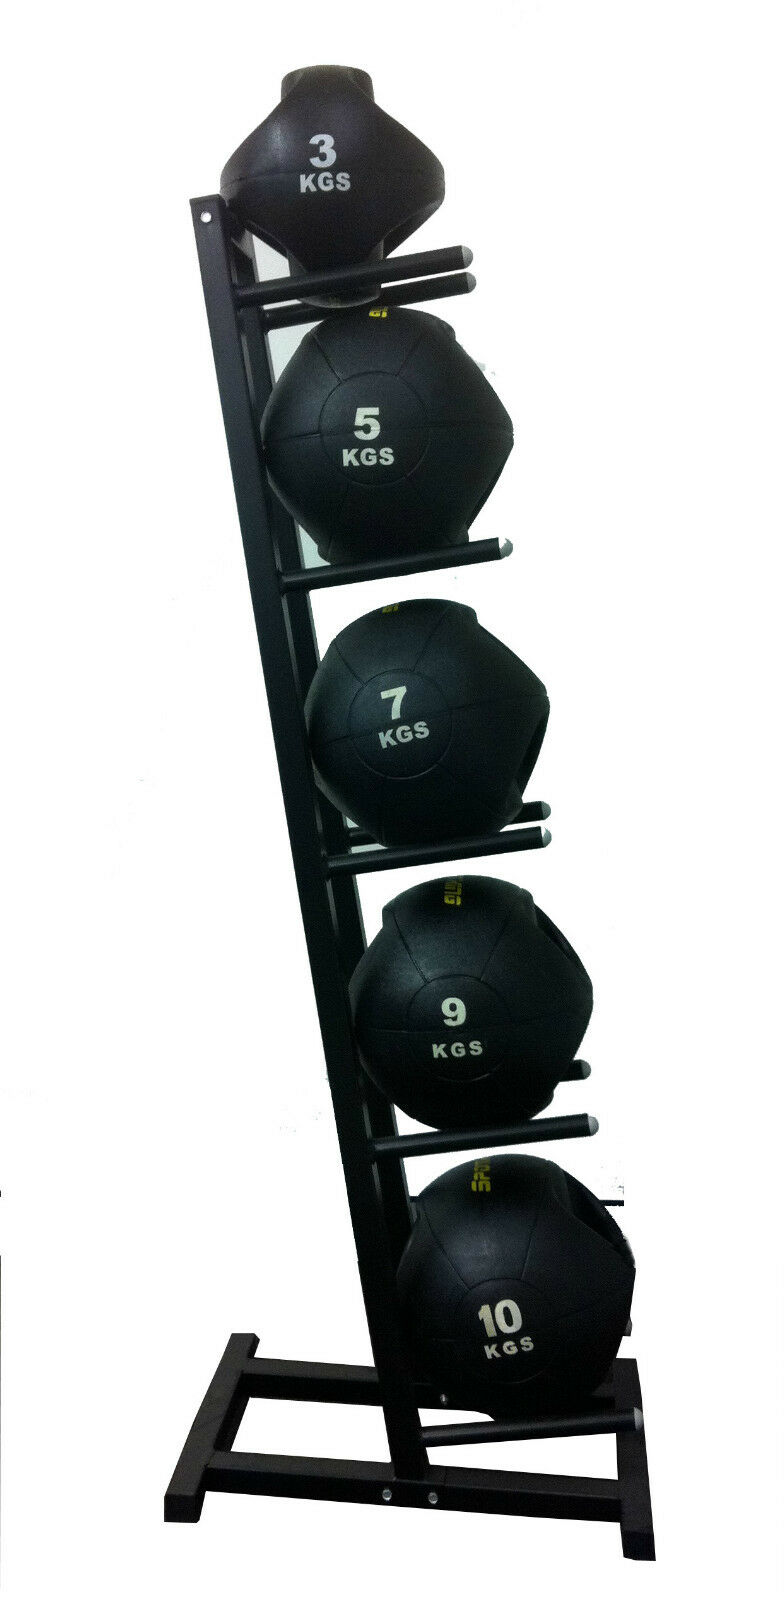 Double-handle Rubber Medicine Ball 3, 5,7,9,10kg Package ...